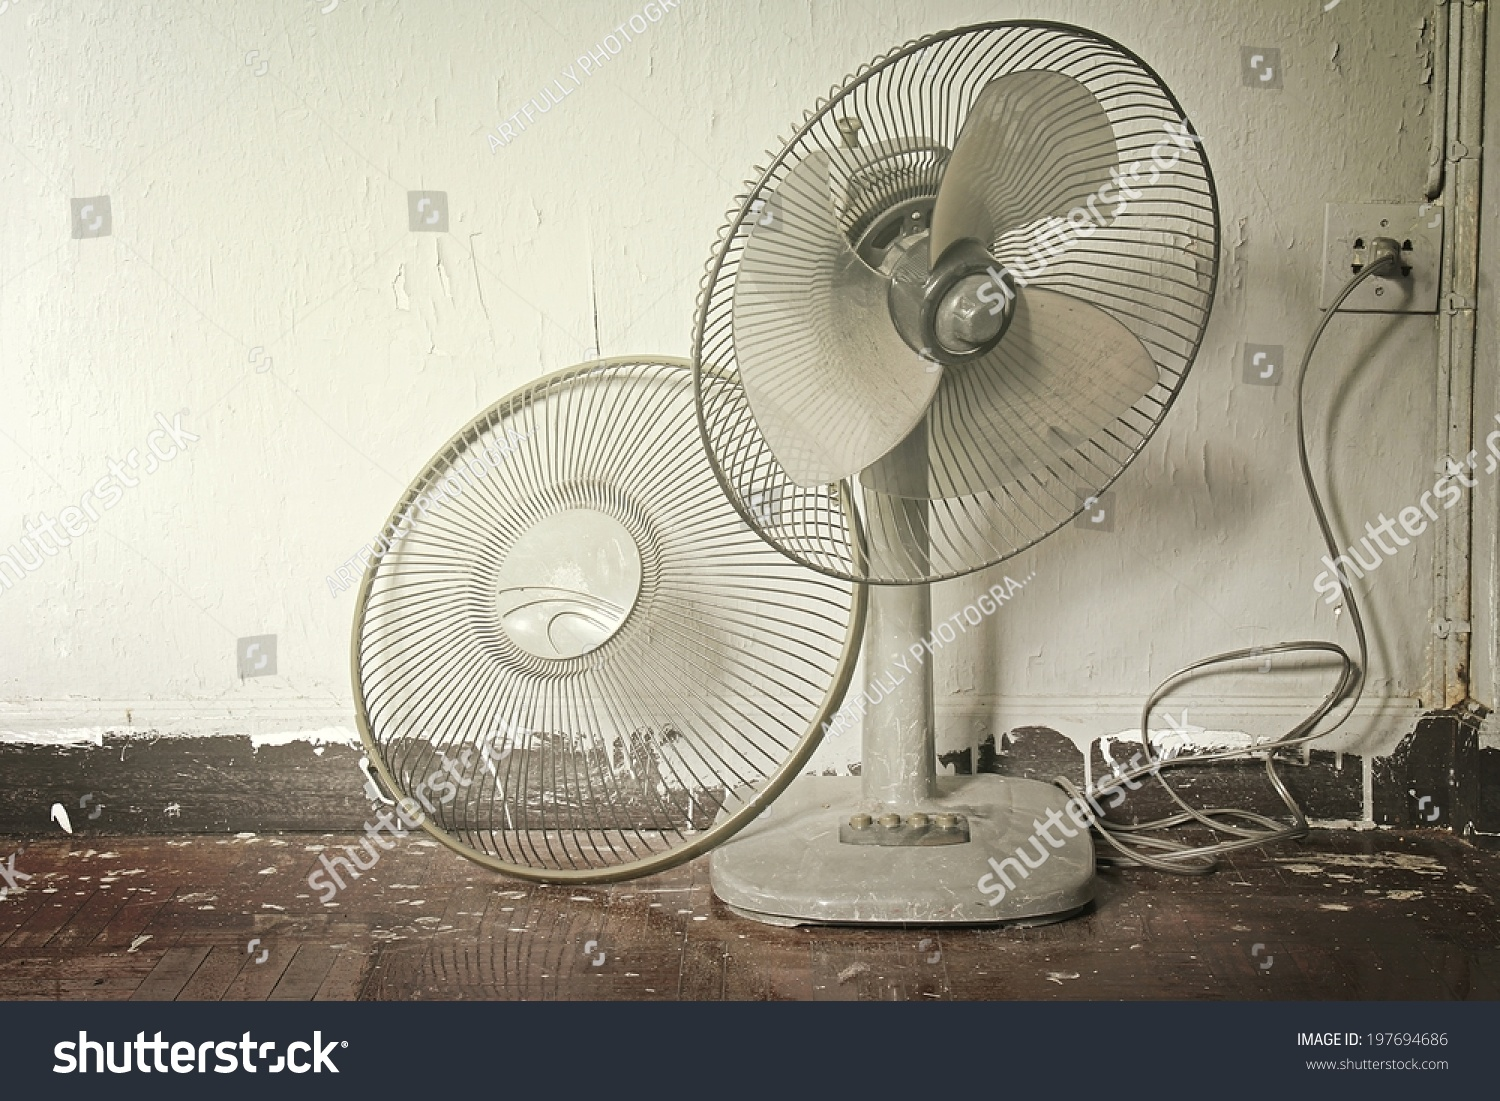 Royalty Free Dirty Broken Old Electric Fan In Hot 197694686 Stock Barbed Wire Photo Public Domain Pictures Weather Process Warm Tone Color